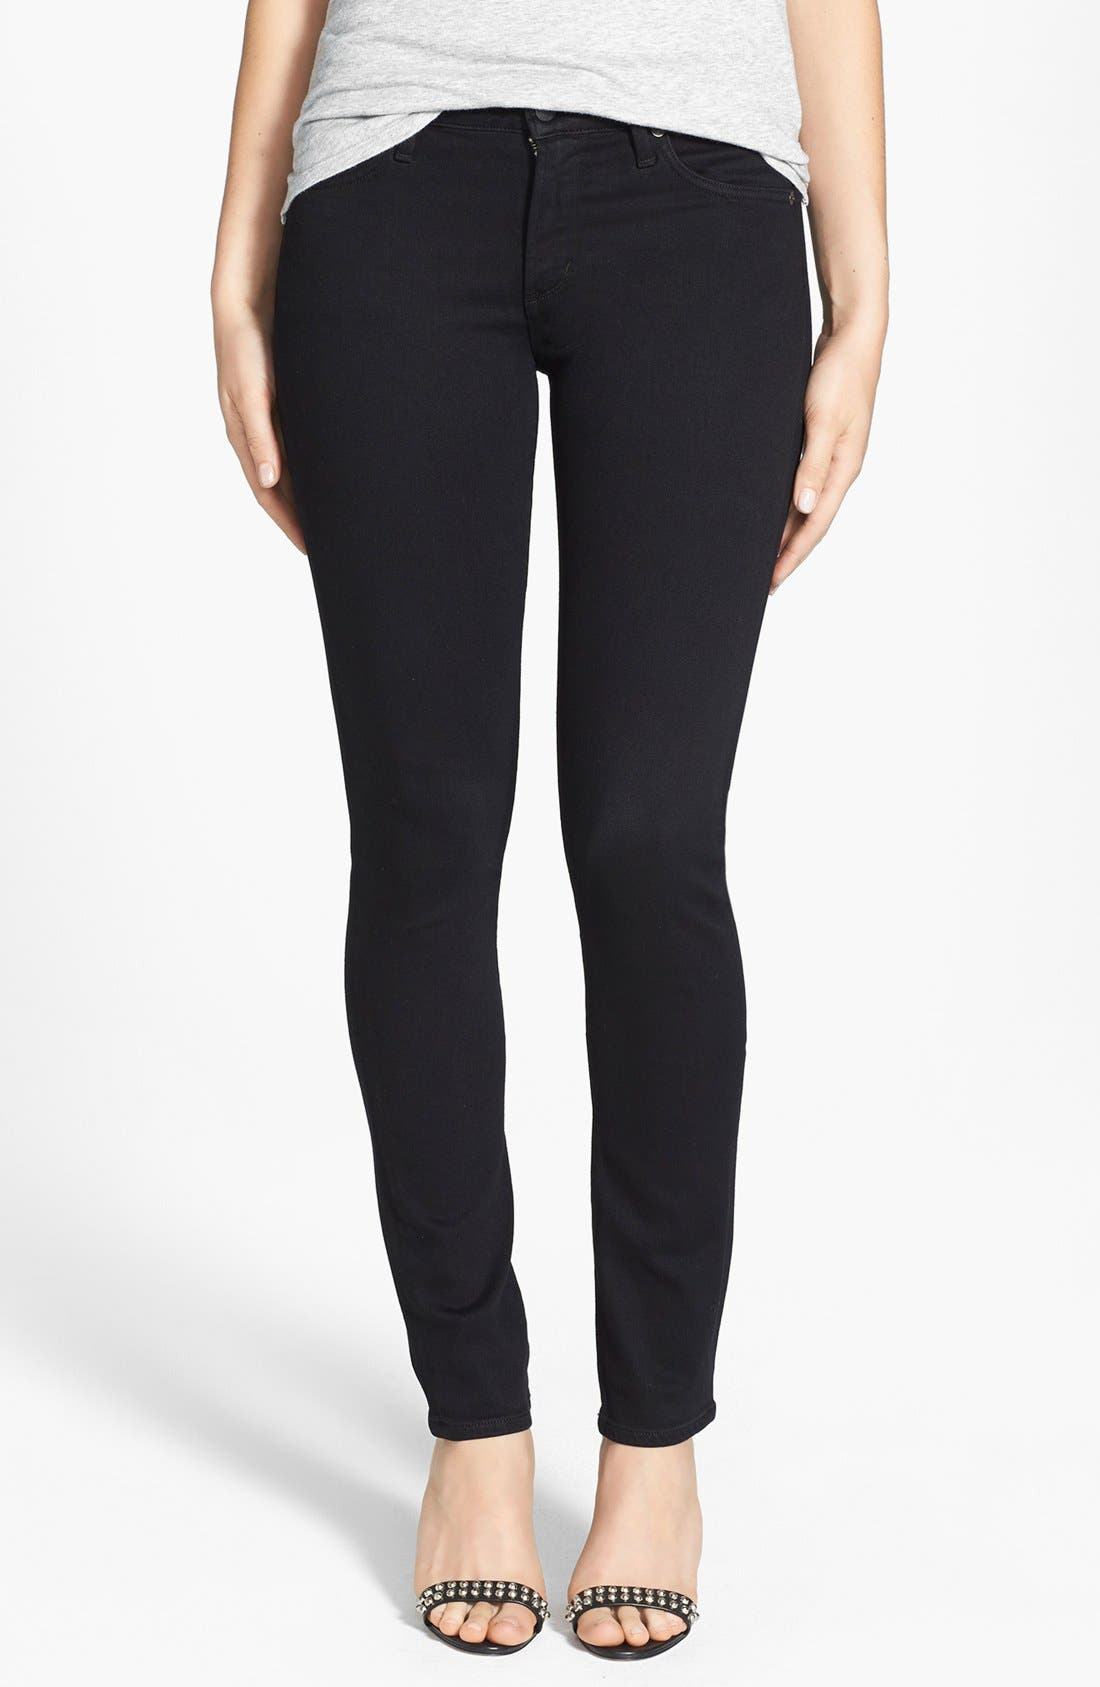 Alternate Image 1 Selected - Citizens of Humanity 'Arielle' Mid Rise Slim Jeans (Tuxedo)